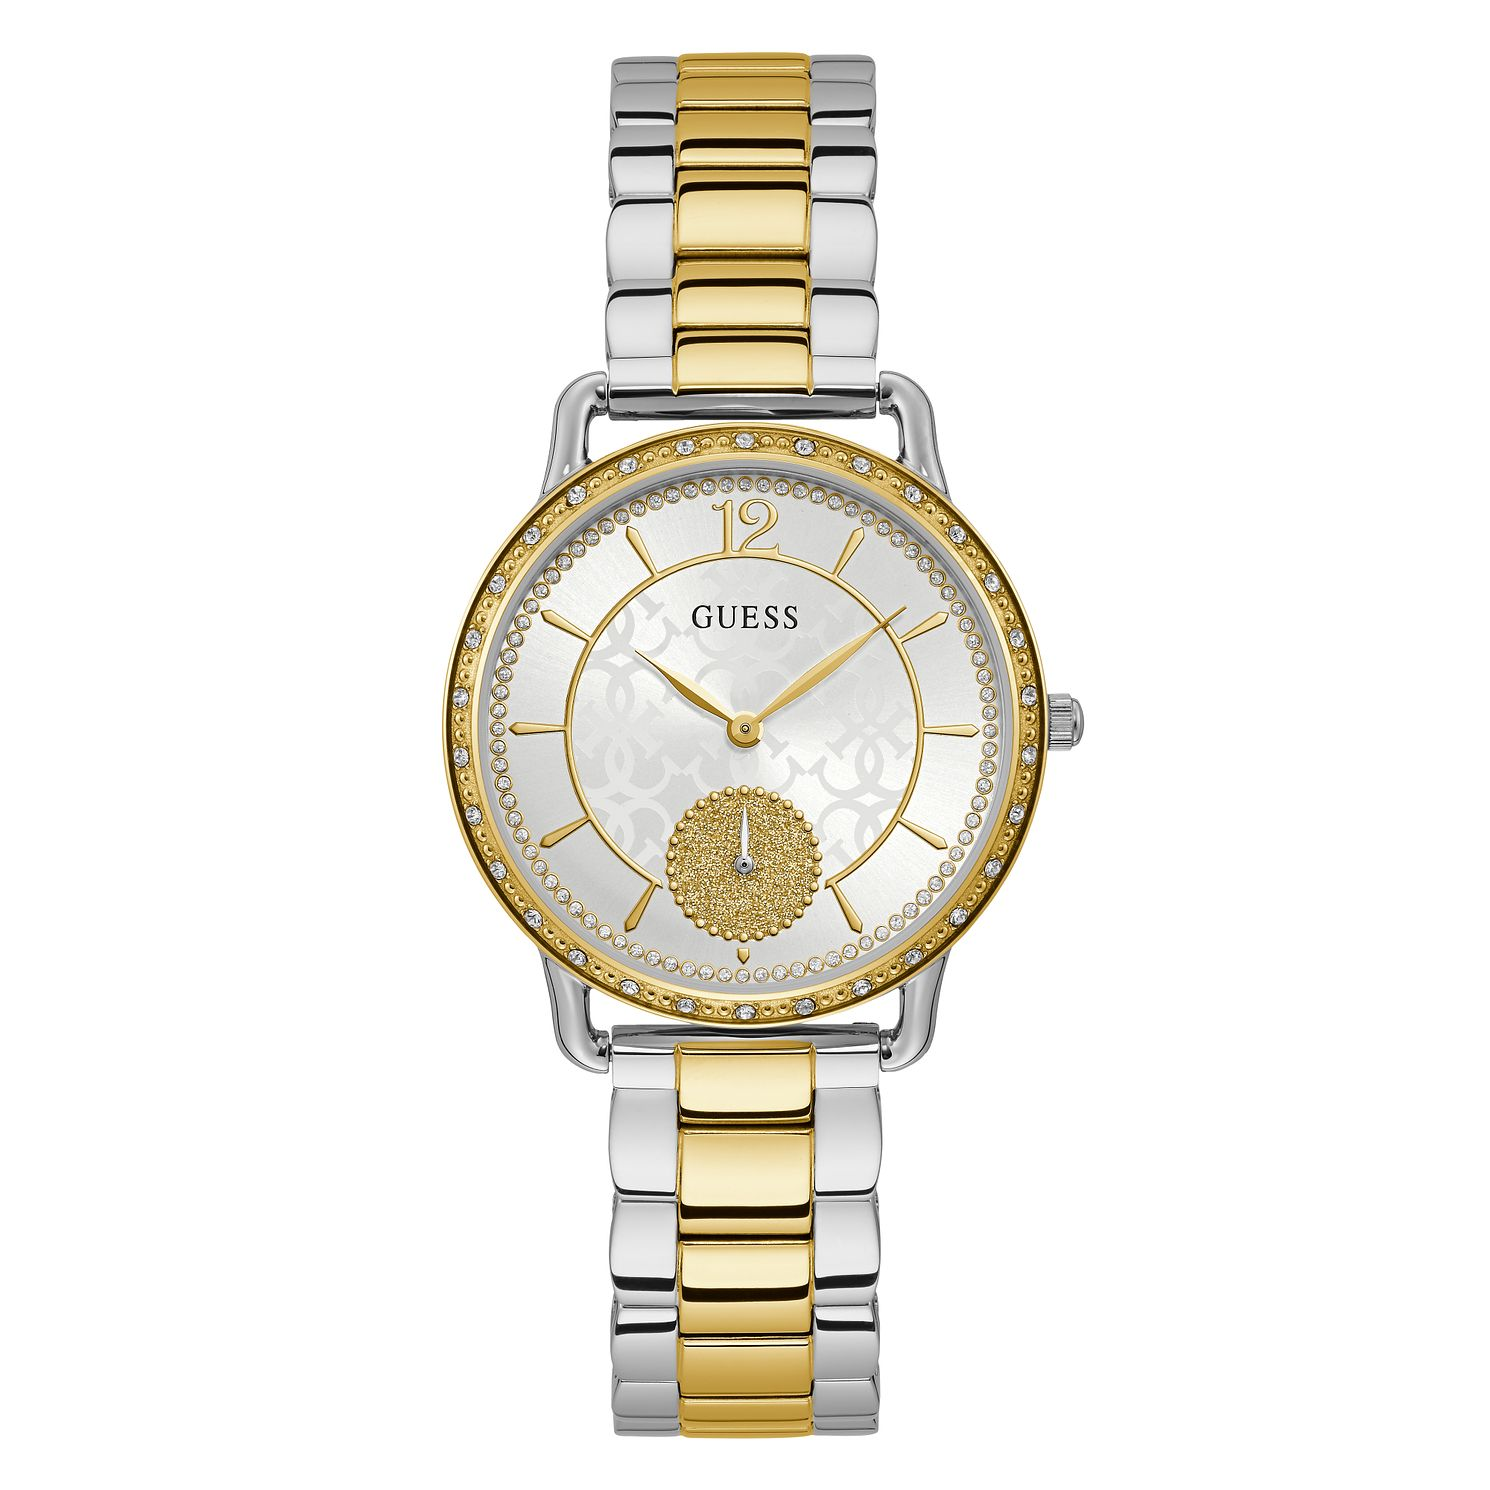 Guess Astral Ladies' Two Tone Bracelet Watch - Product number 5870518